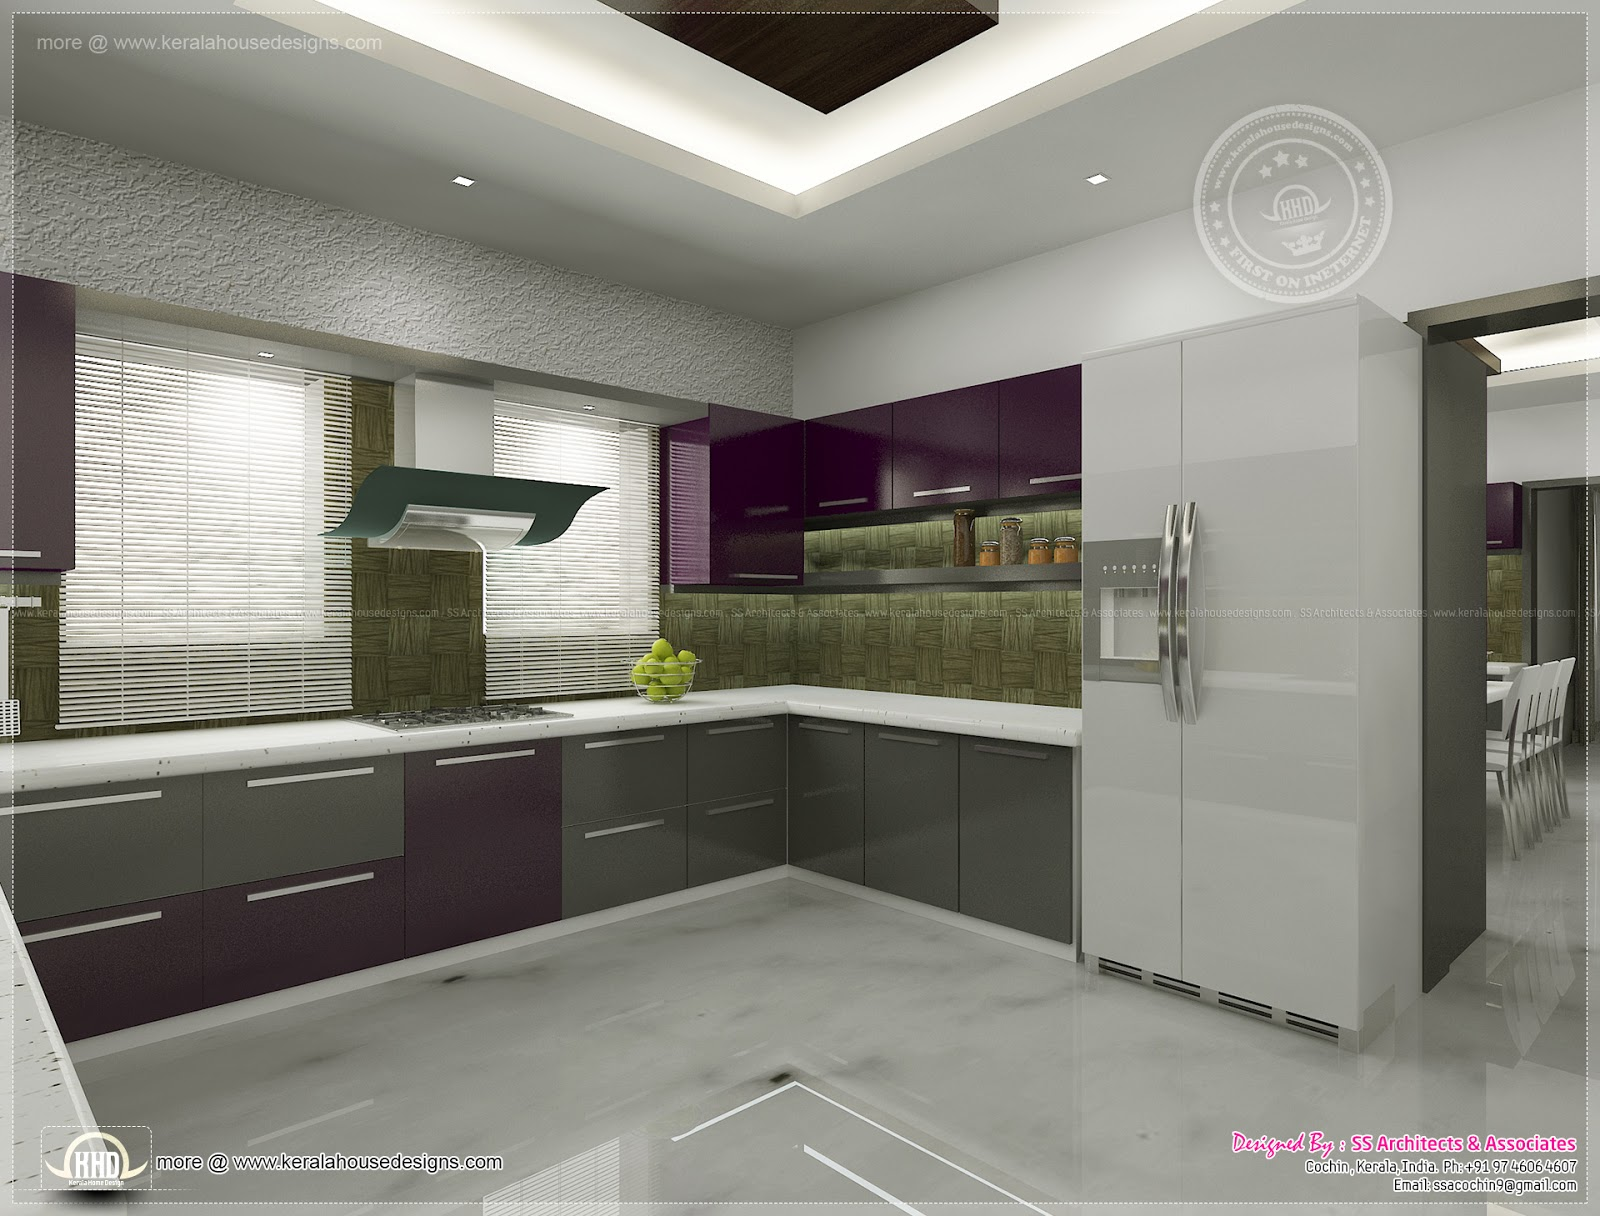 Kitchen interior views by ss architects cochin kerala for Interior design ideas for kitchens